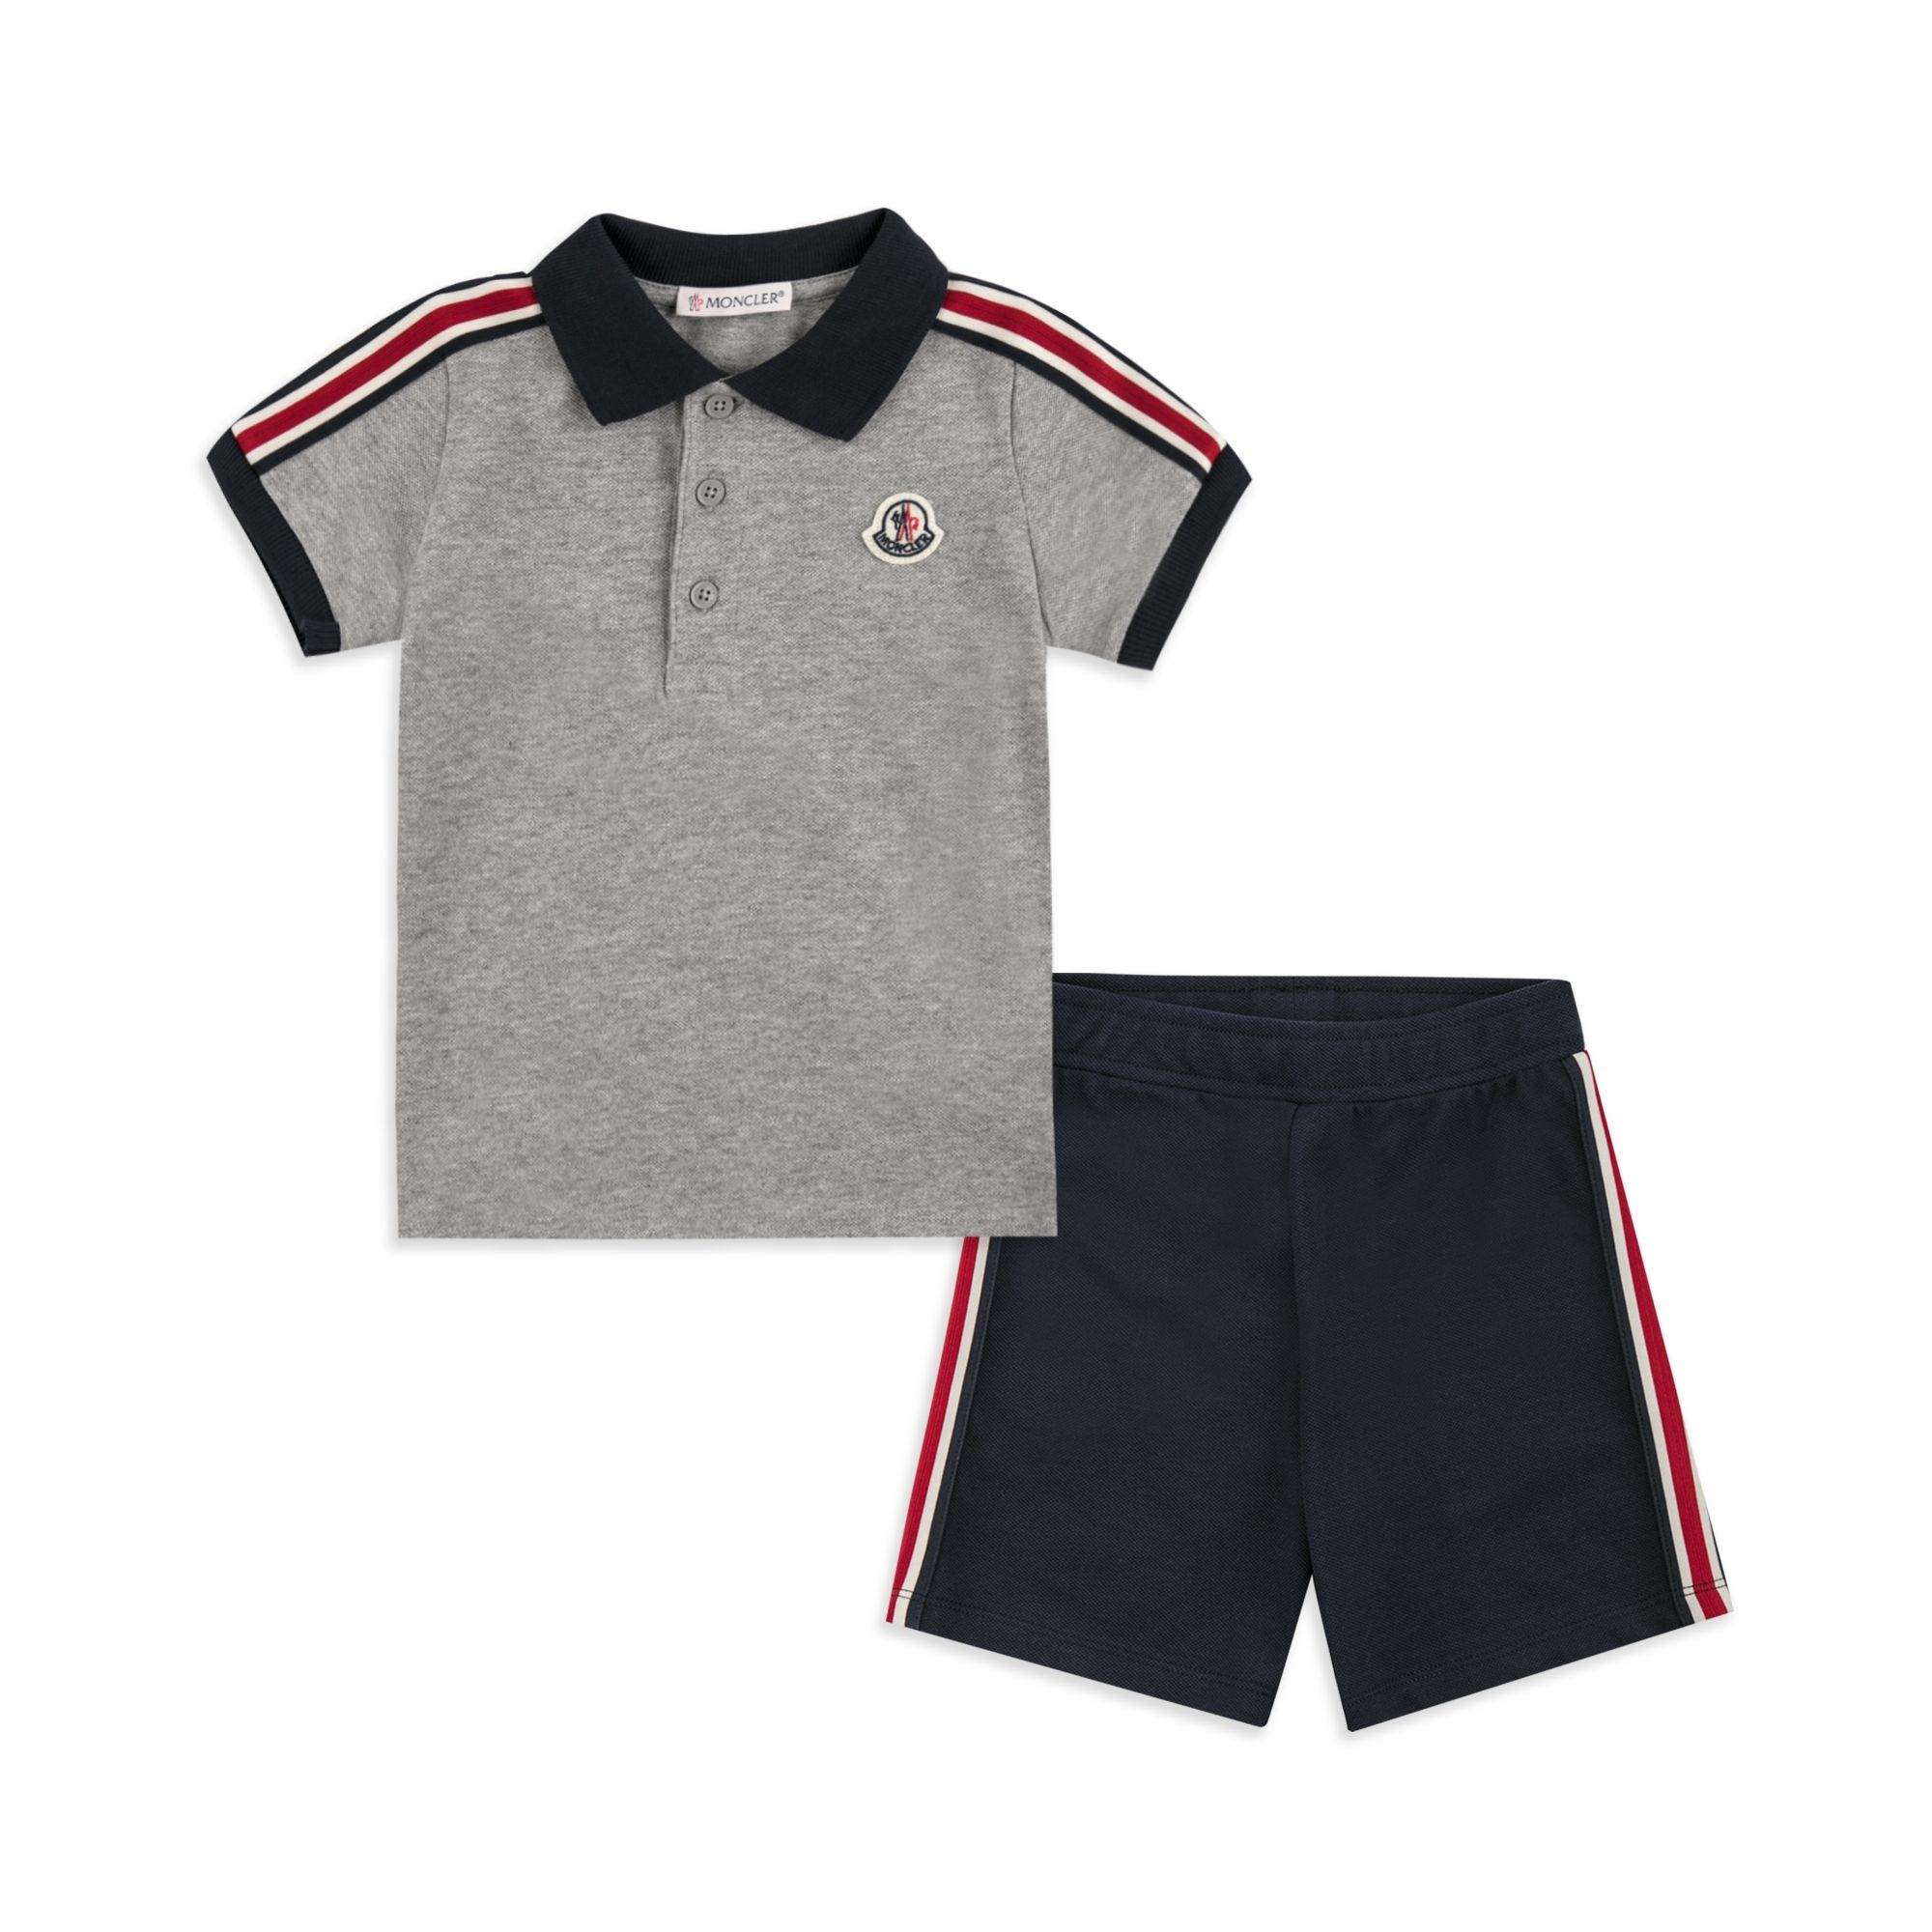 8f9991d00 Baby Boys Striped Polo Outfit Set - Grey by Moncler | Baby Outfits ...